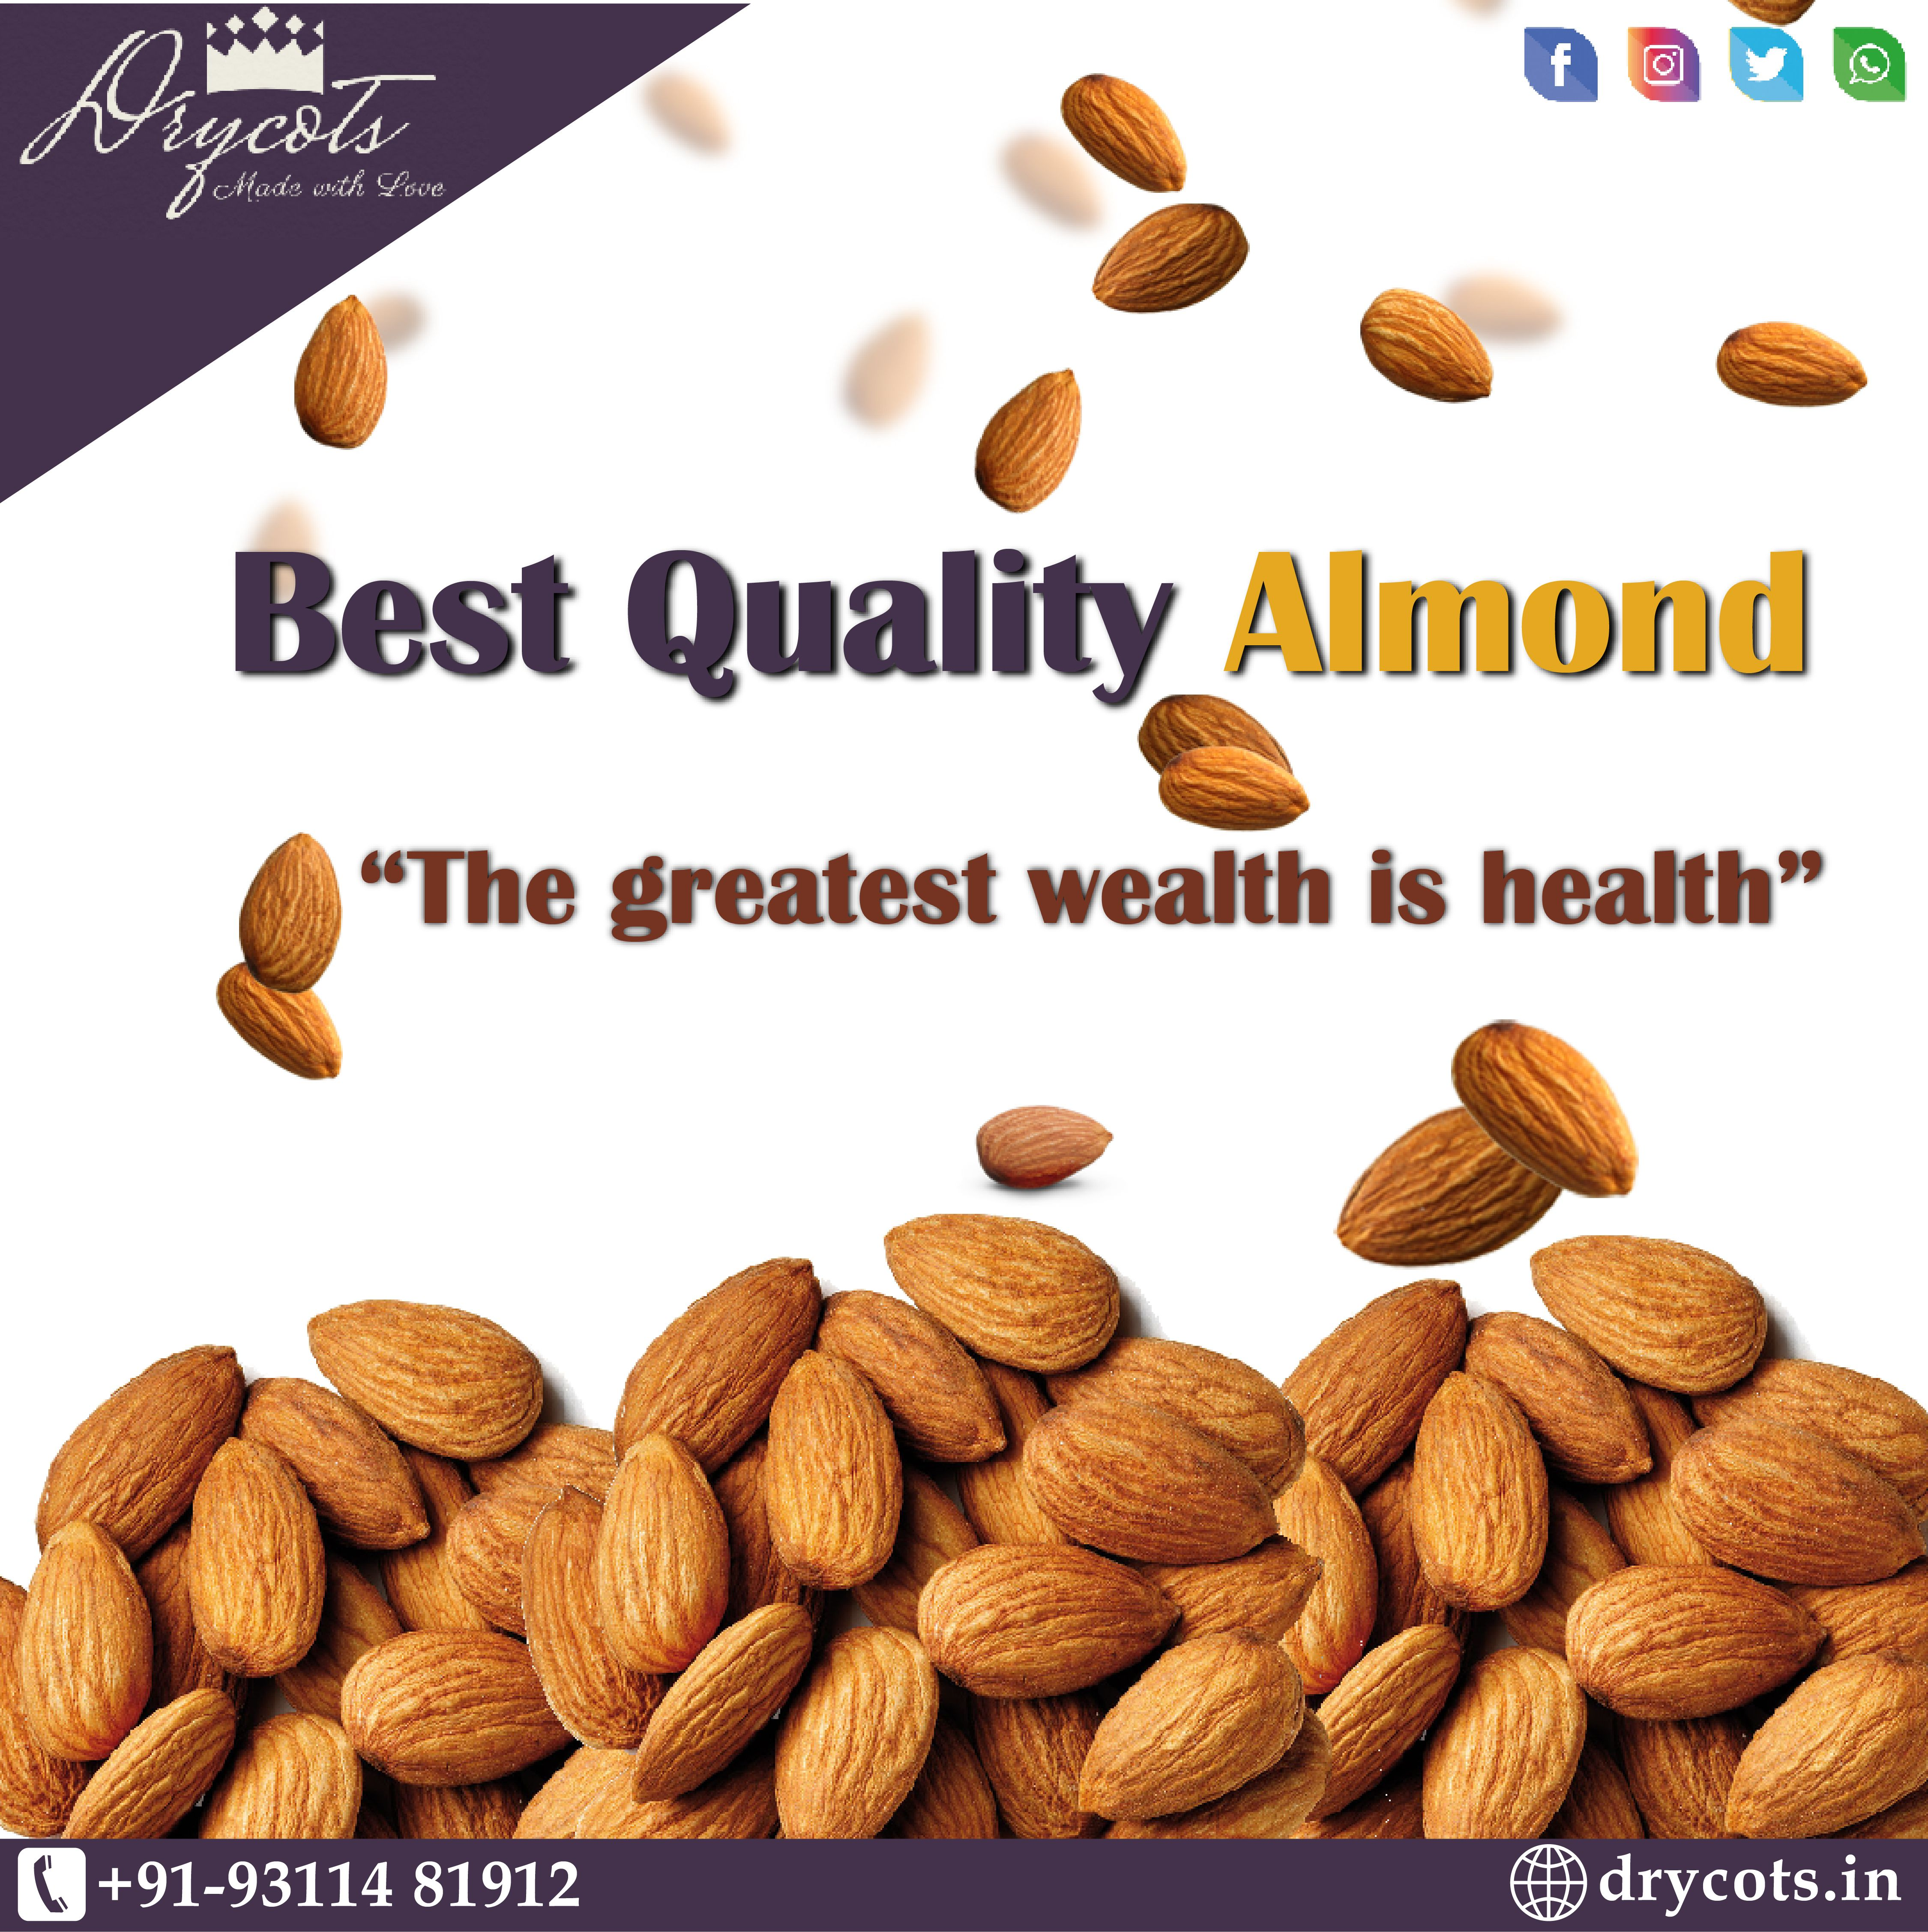 """""""The greatest wealth is health"""" Best Quality Almond - Best price . Drycots_made_with_love call - +91-9311481912 #dryfruits #dryfruitsandnuts #drycots #almond #bestprice #dryfruit #nuts #almondsindia #dryfruitindia #wholesalenuts #bestnuts #reasonableprice #nutsforbaking #healthynuts #almonds #fitnessfood #health"""